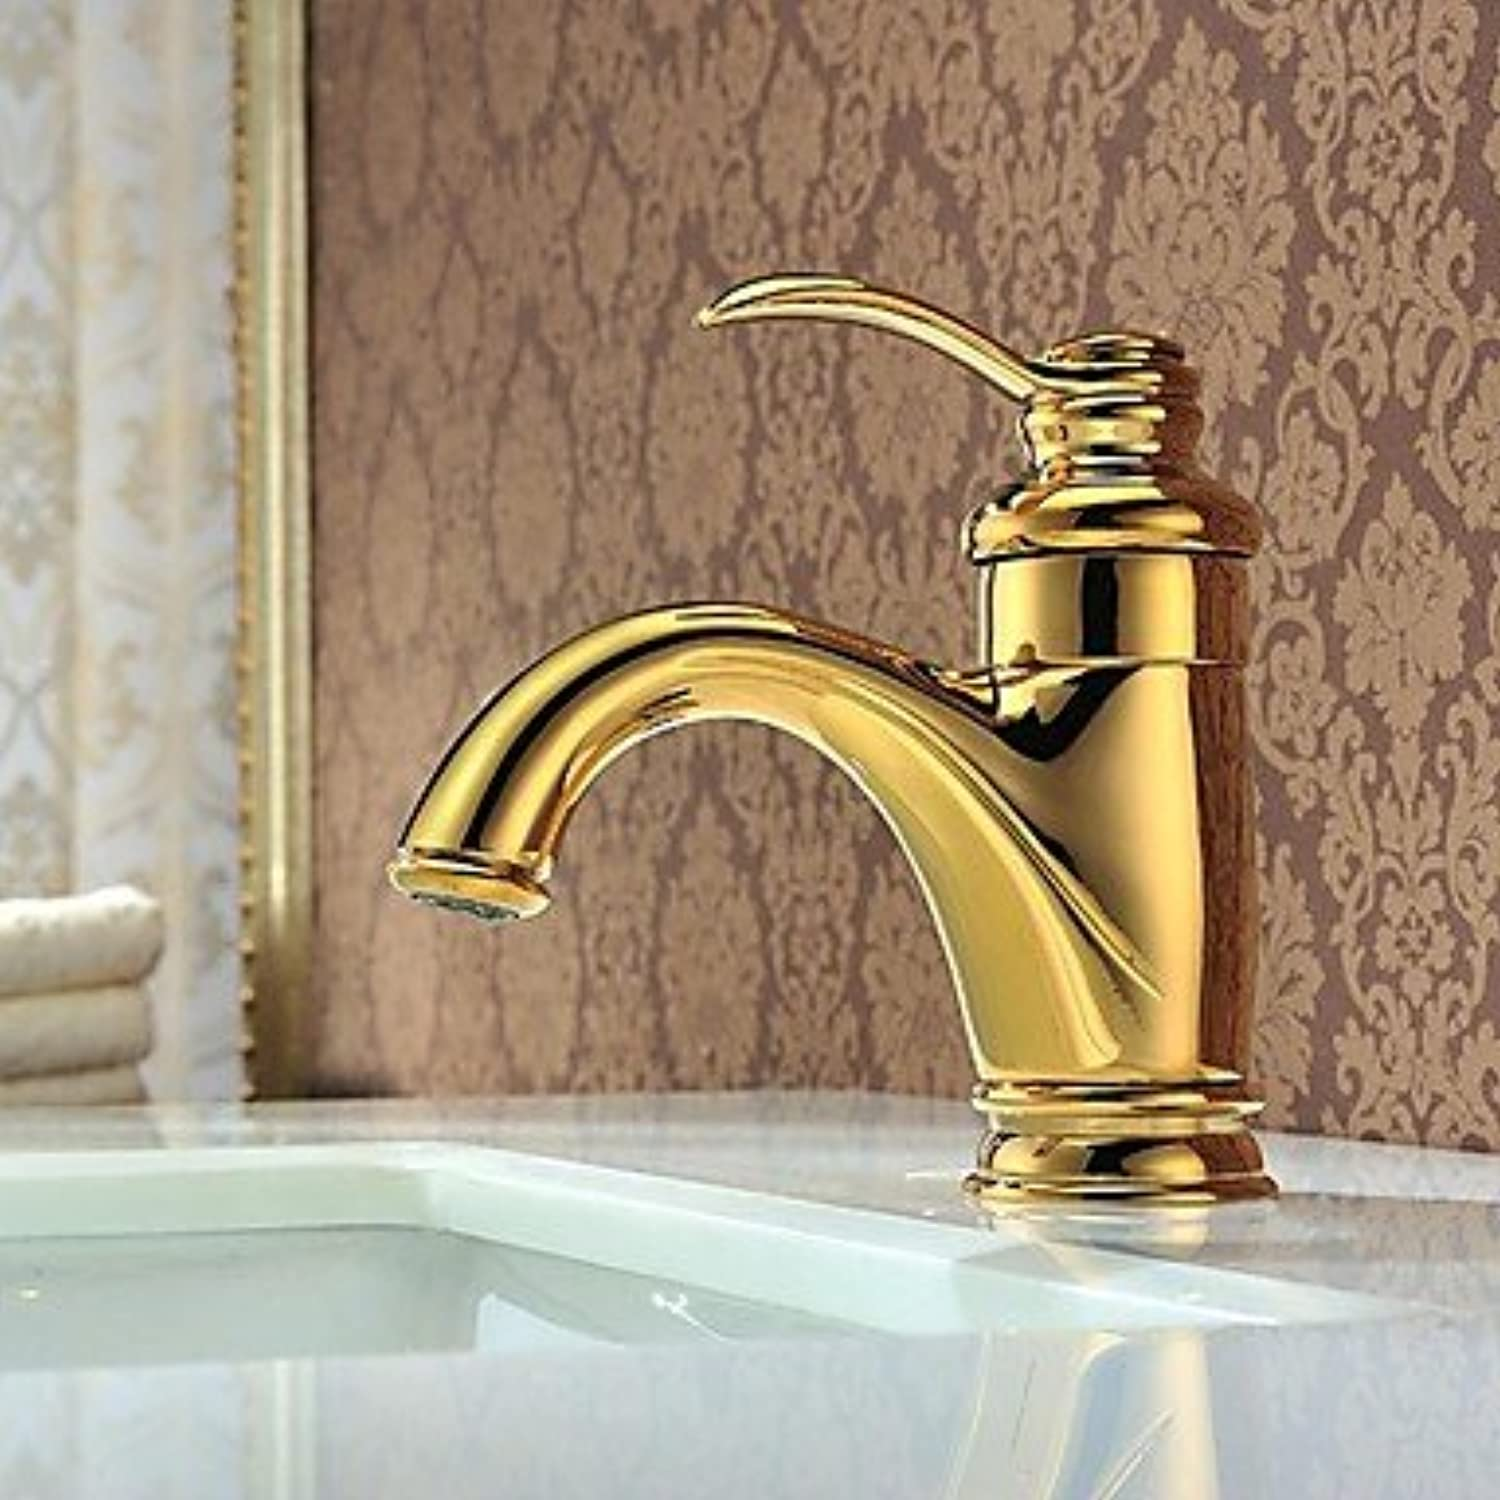 HFaucet? Charmingwater Contemporary Waterfall Brass Ti-PVD